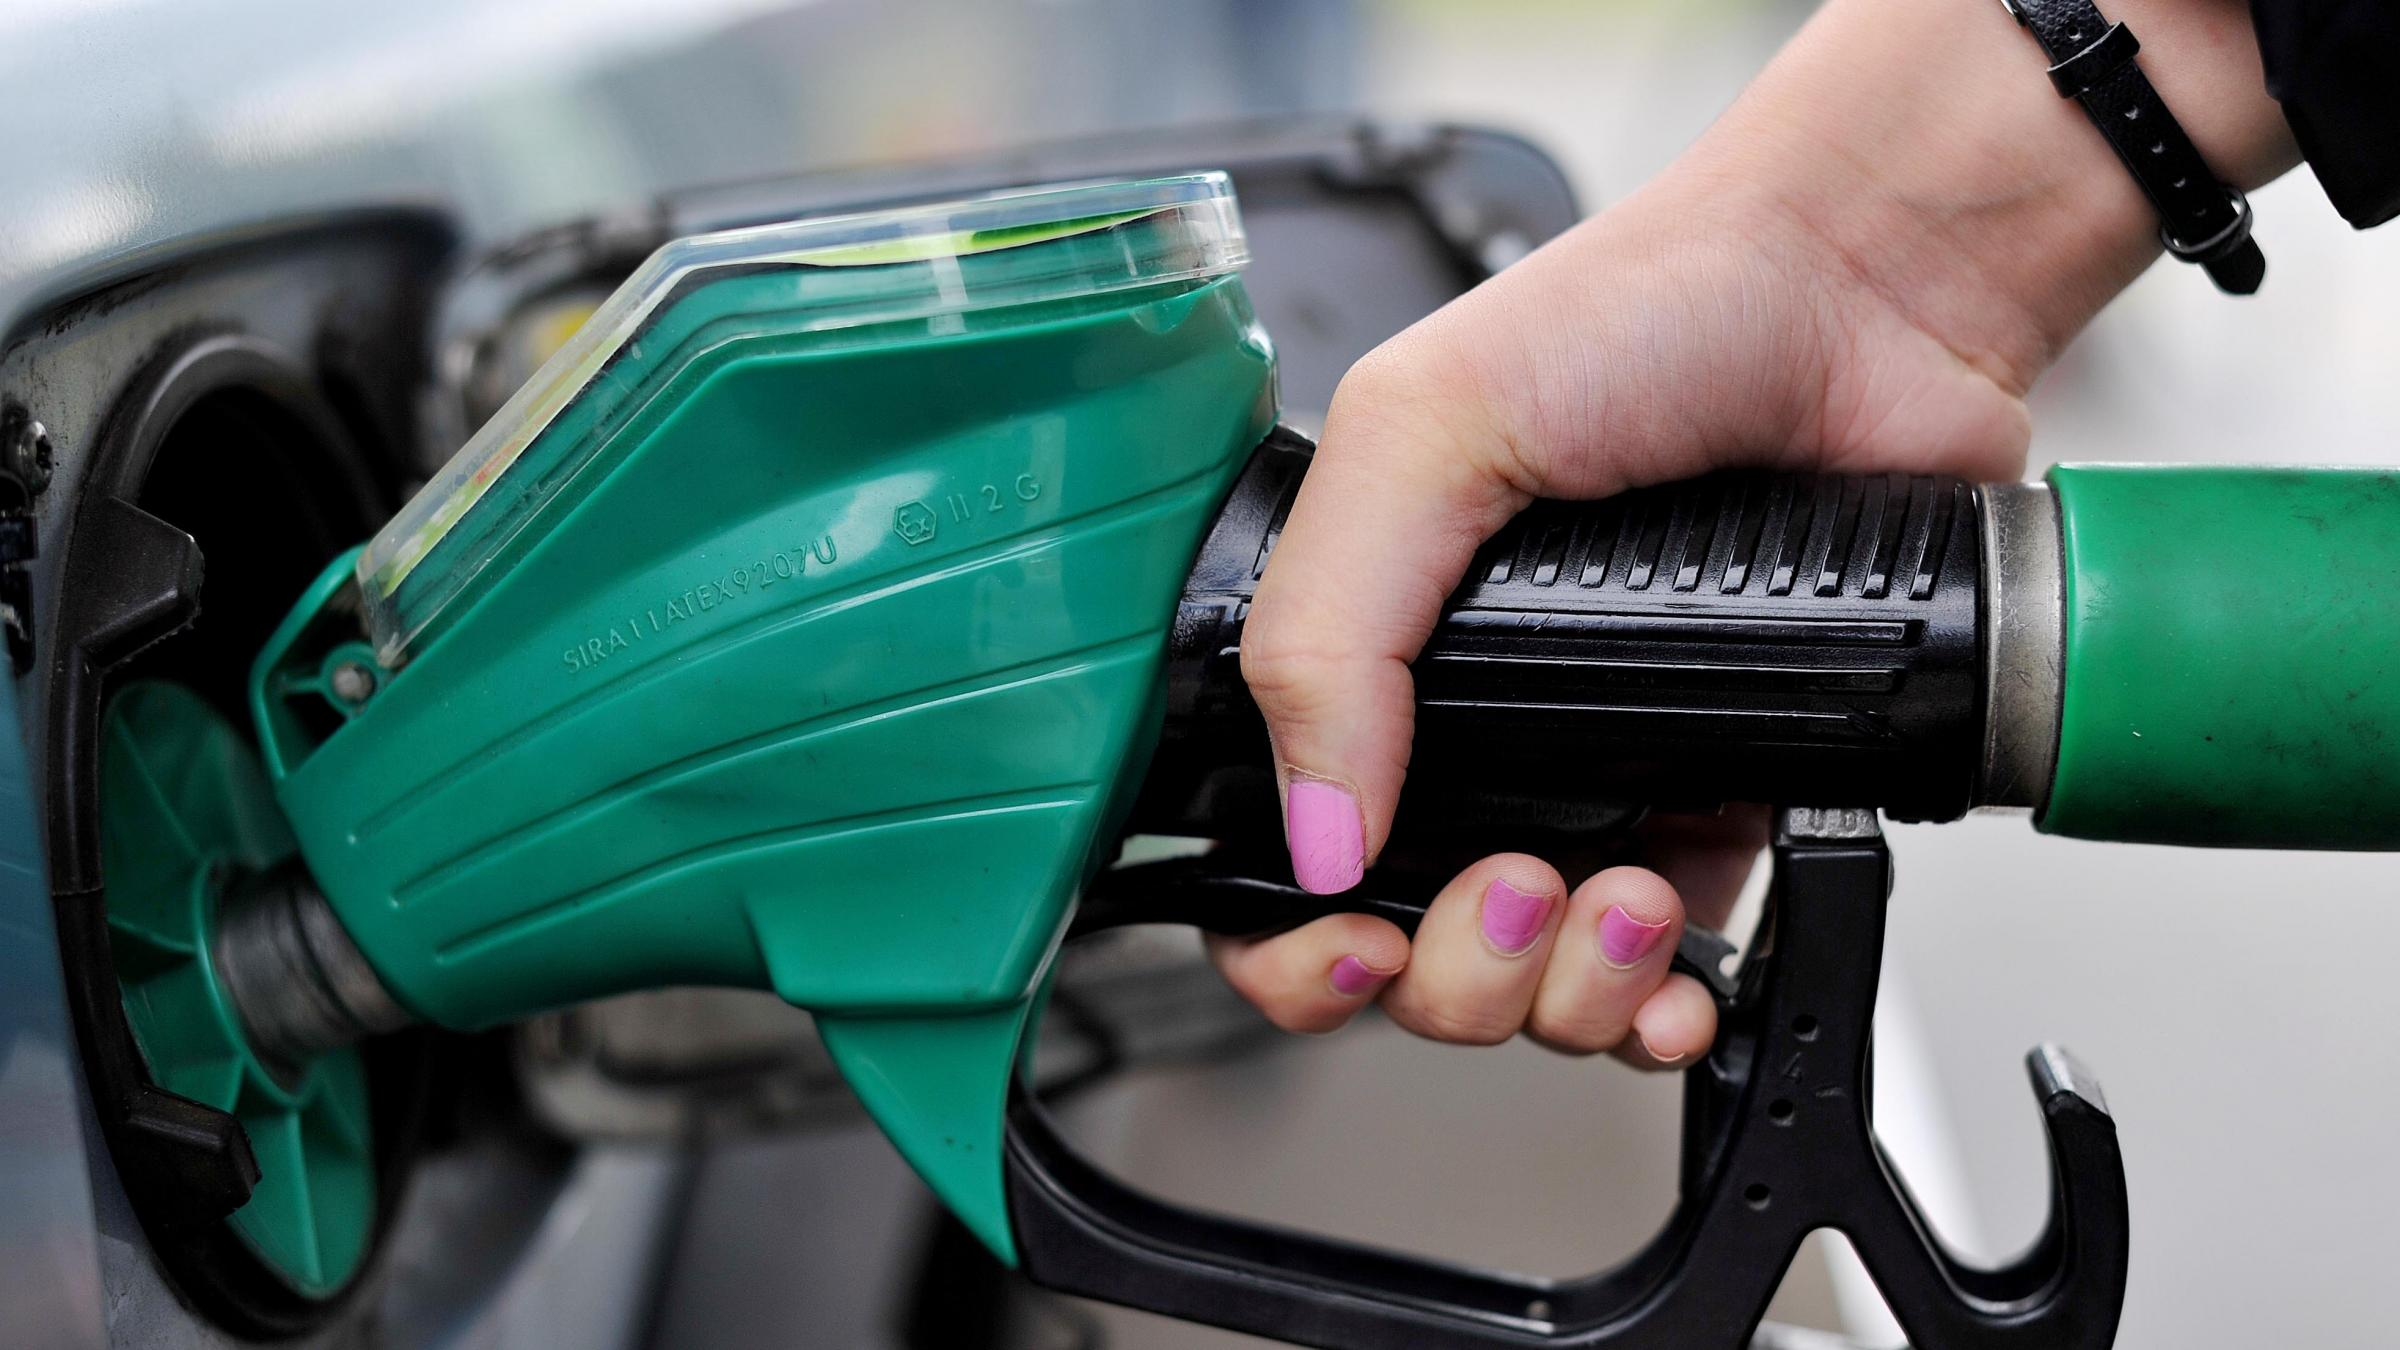 Asda cuts fuel prices by 3p per litre amid supermarket price war